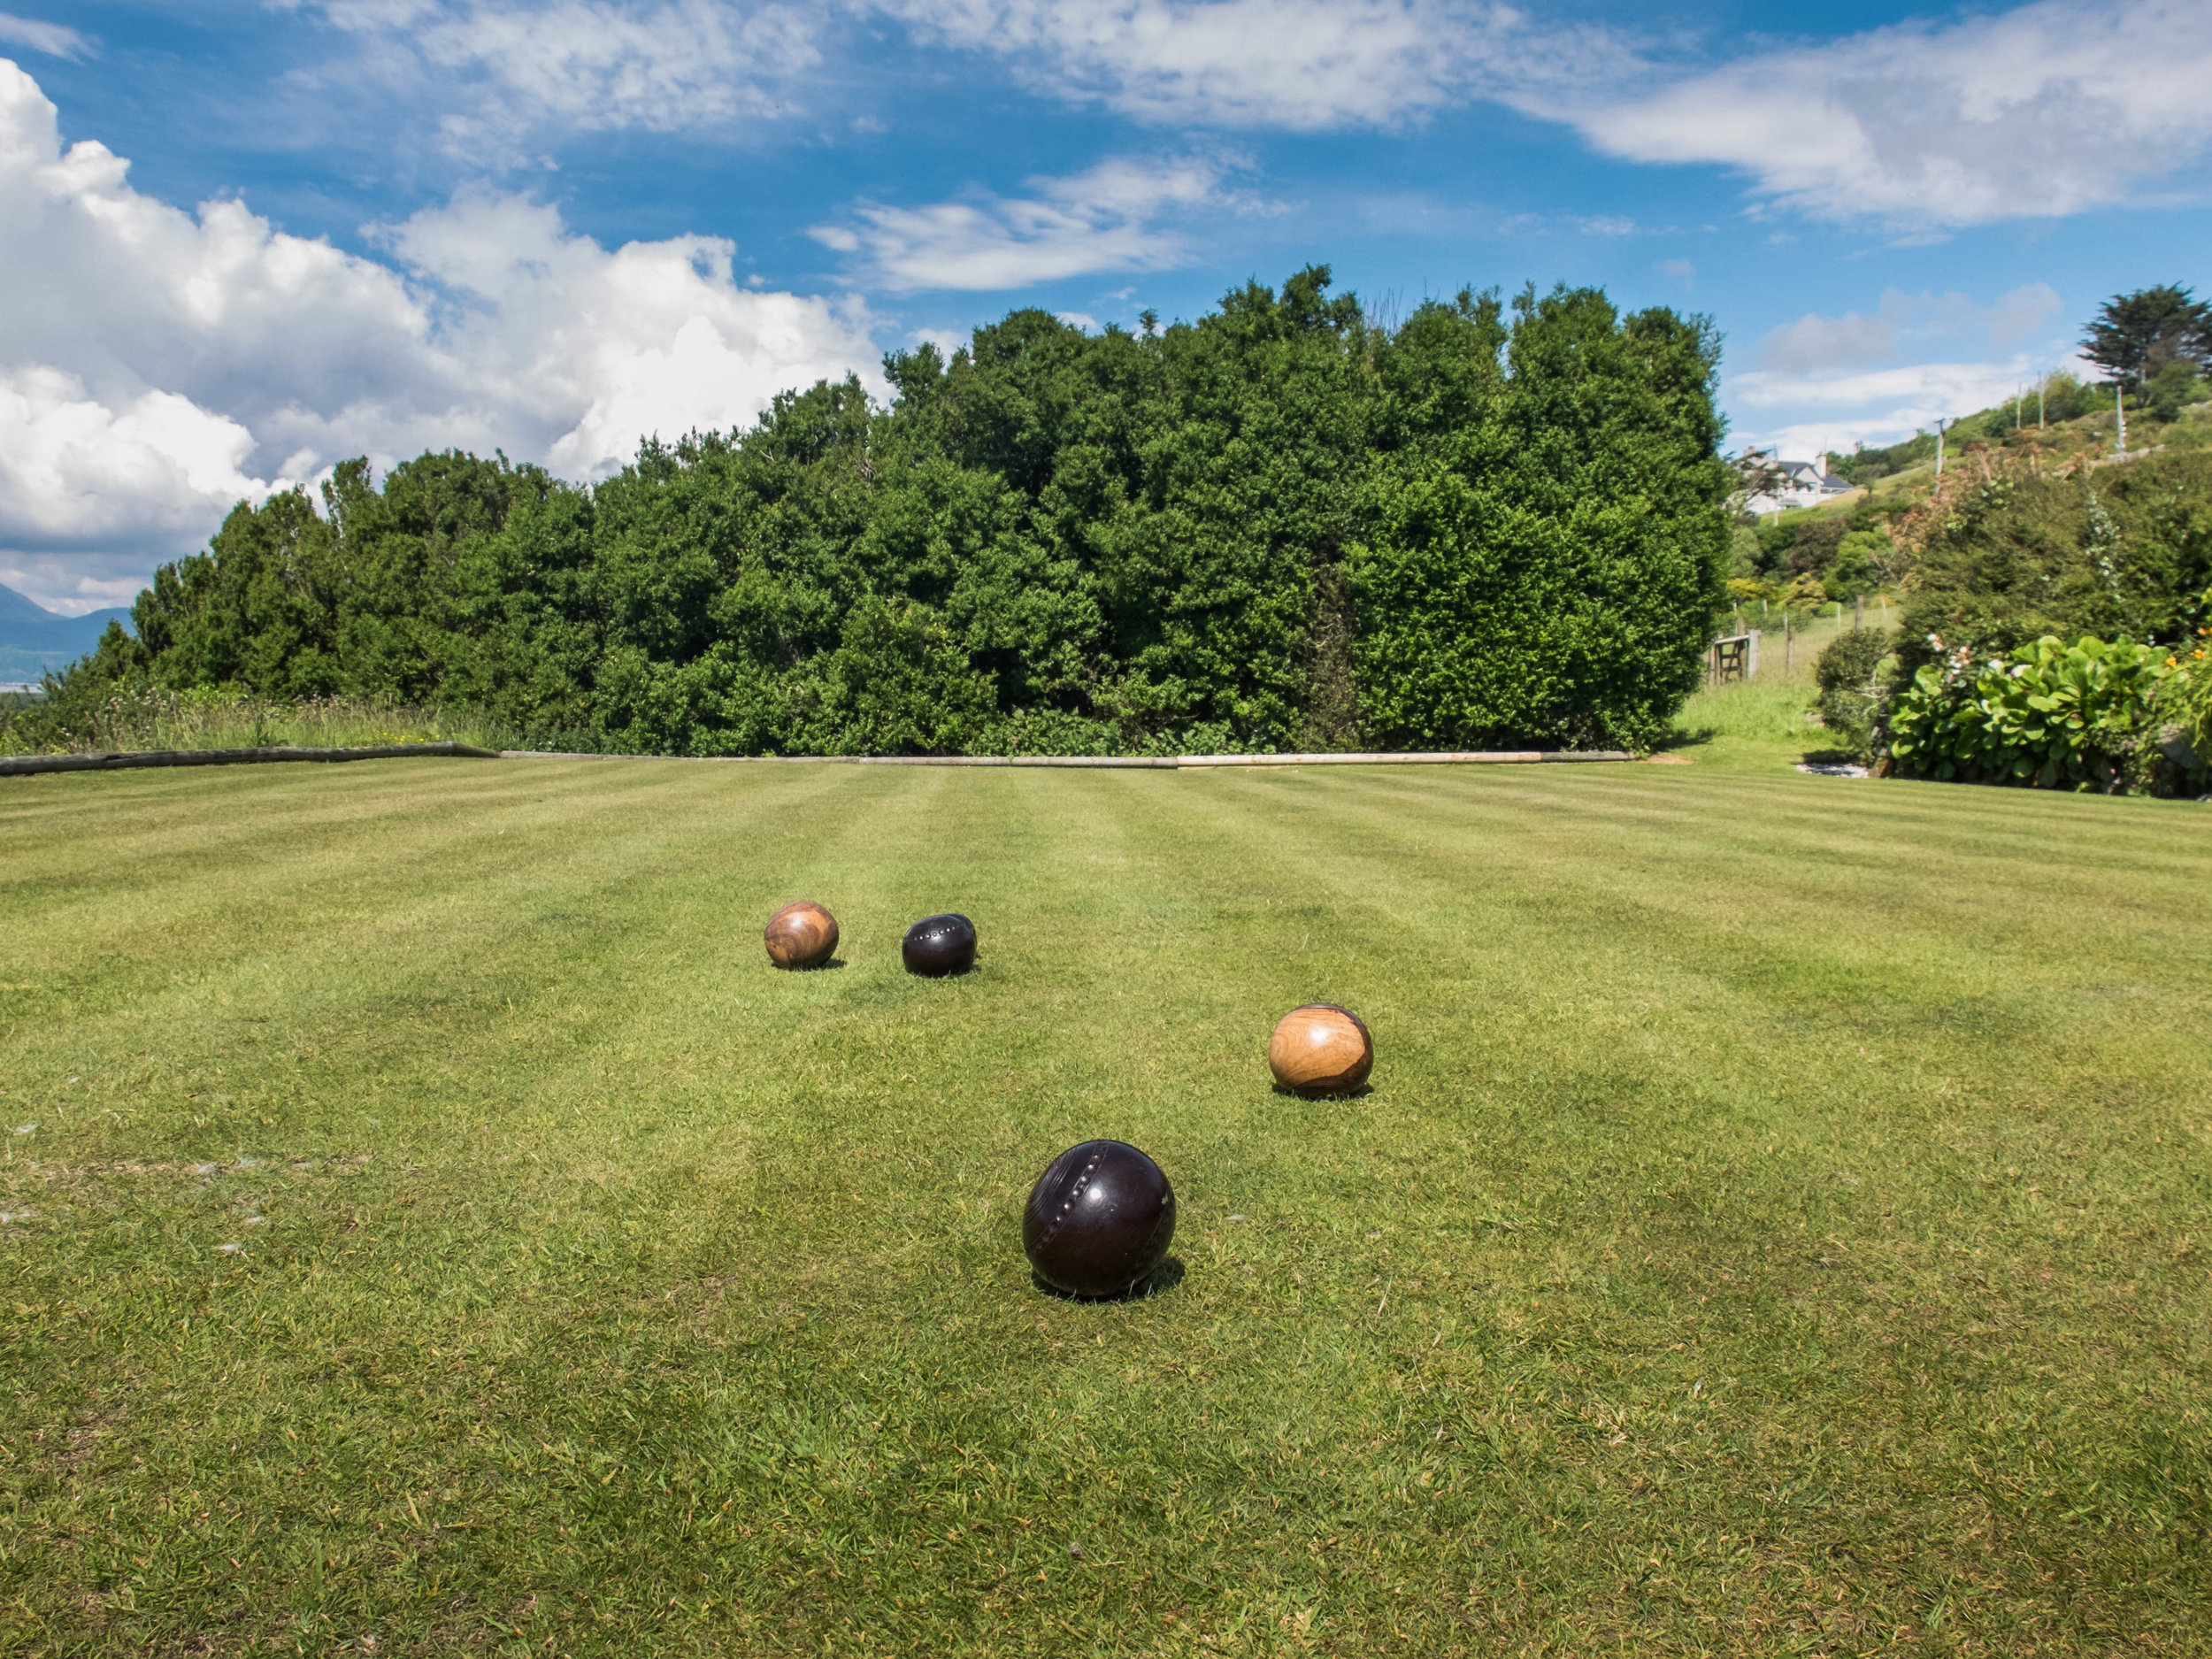 Our private Bowls court at Hafod Wen